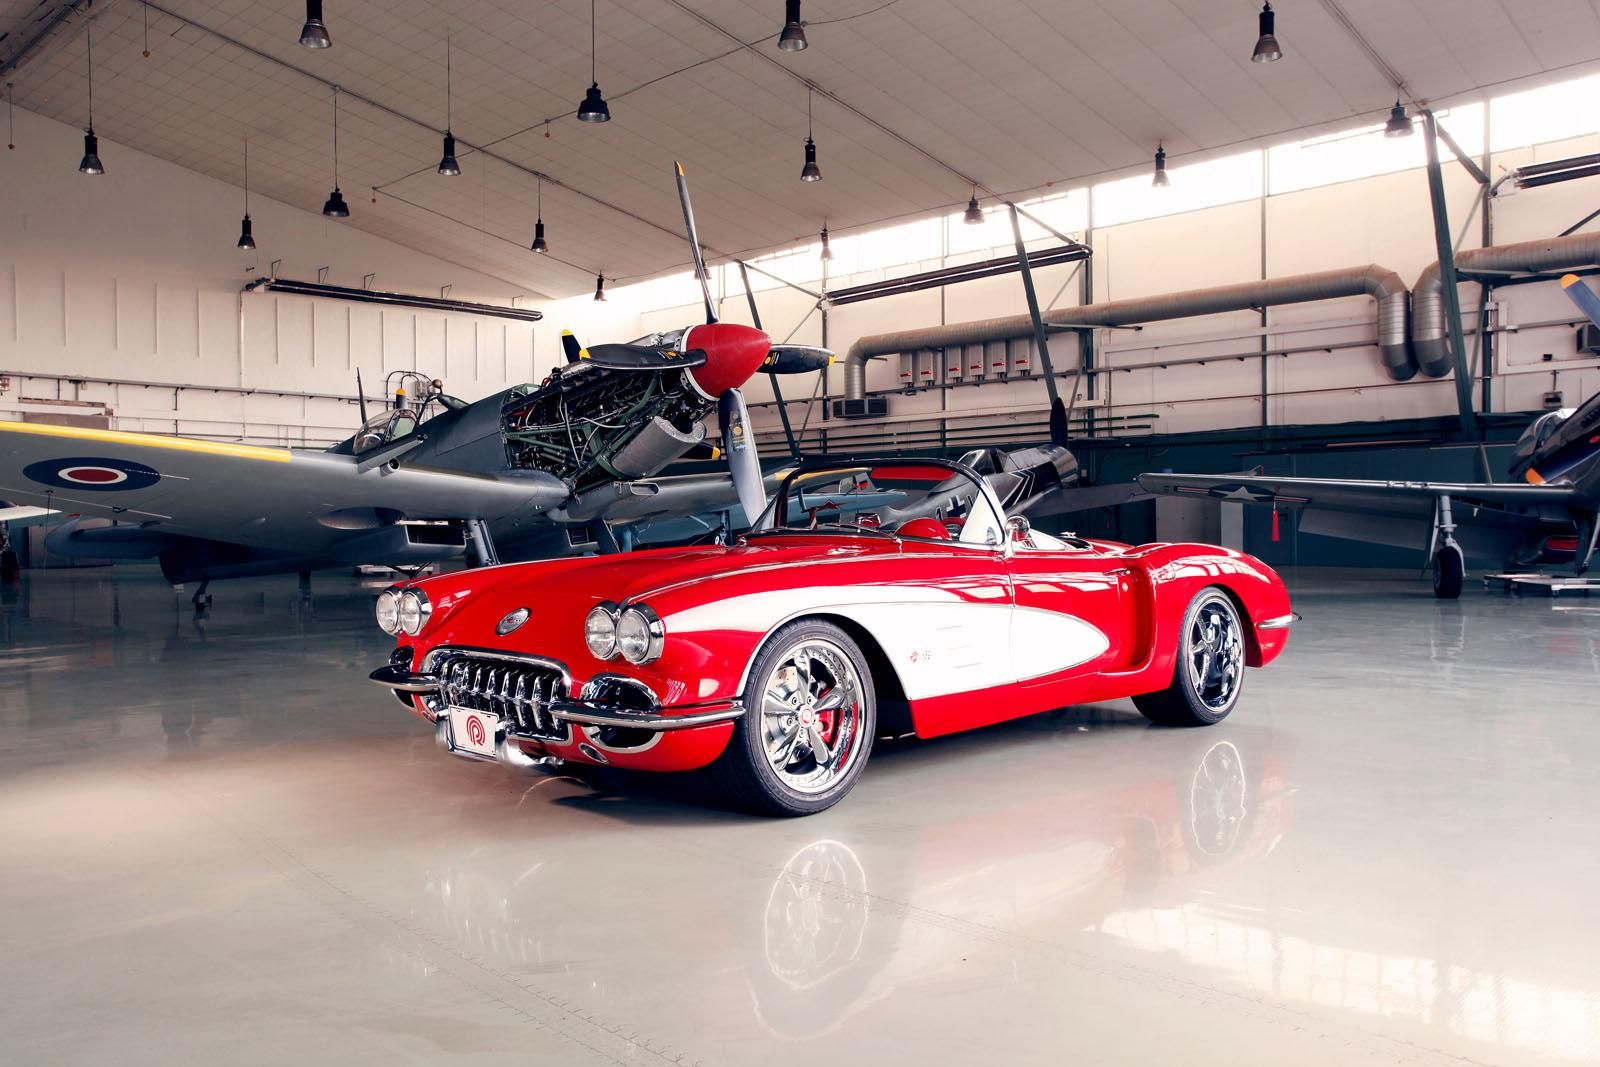 Chevrolet Corvette Pogea Racing 1959 Usually Clic Cars Should Stay Untouched Especially First Gen Vettes But This Is One A Exception